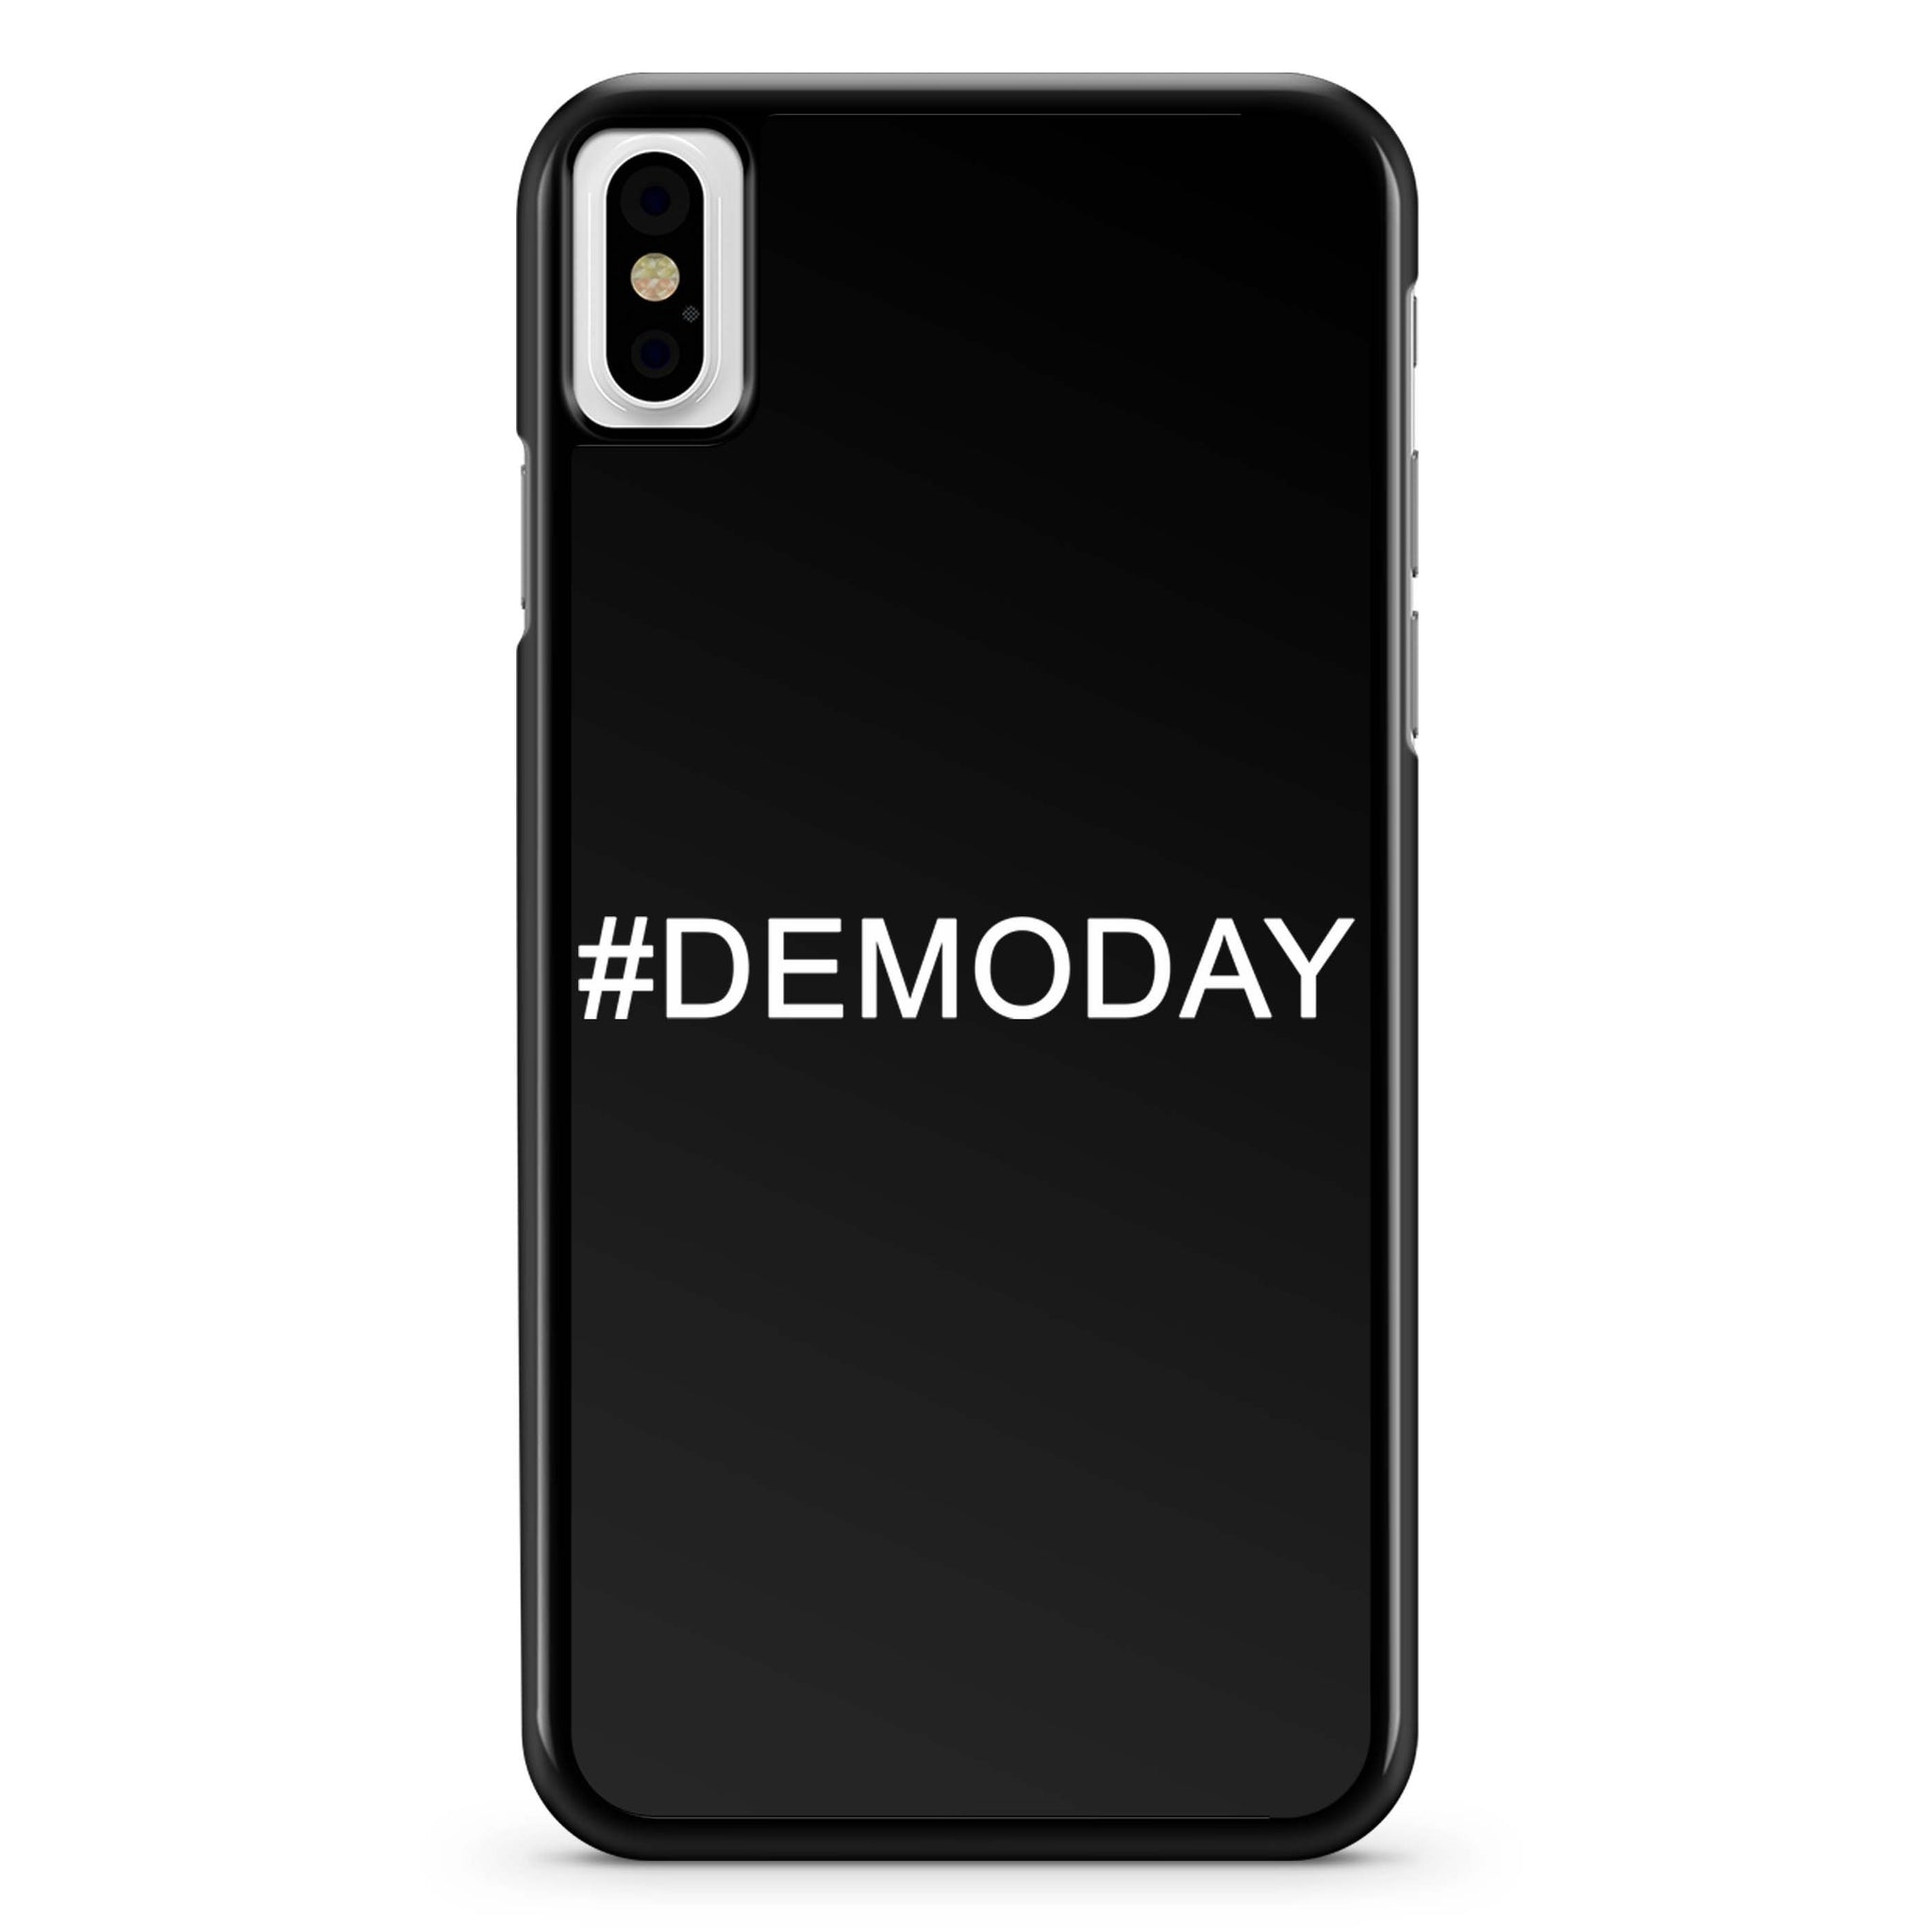 Demoday Hashtag #demoday iPhone X Case